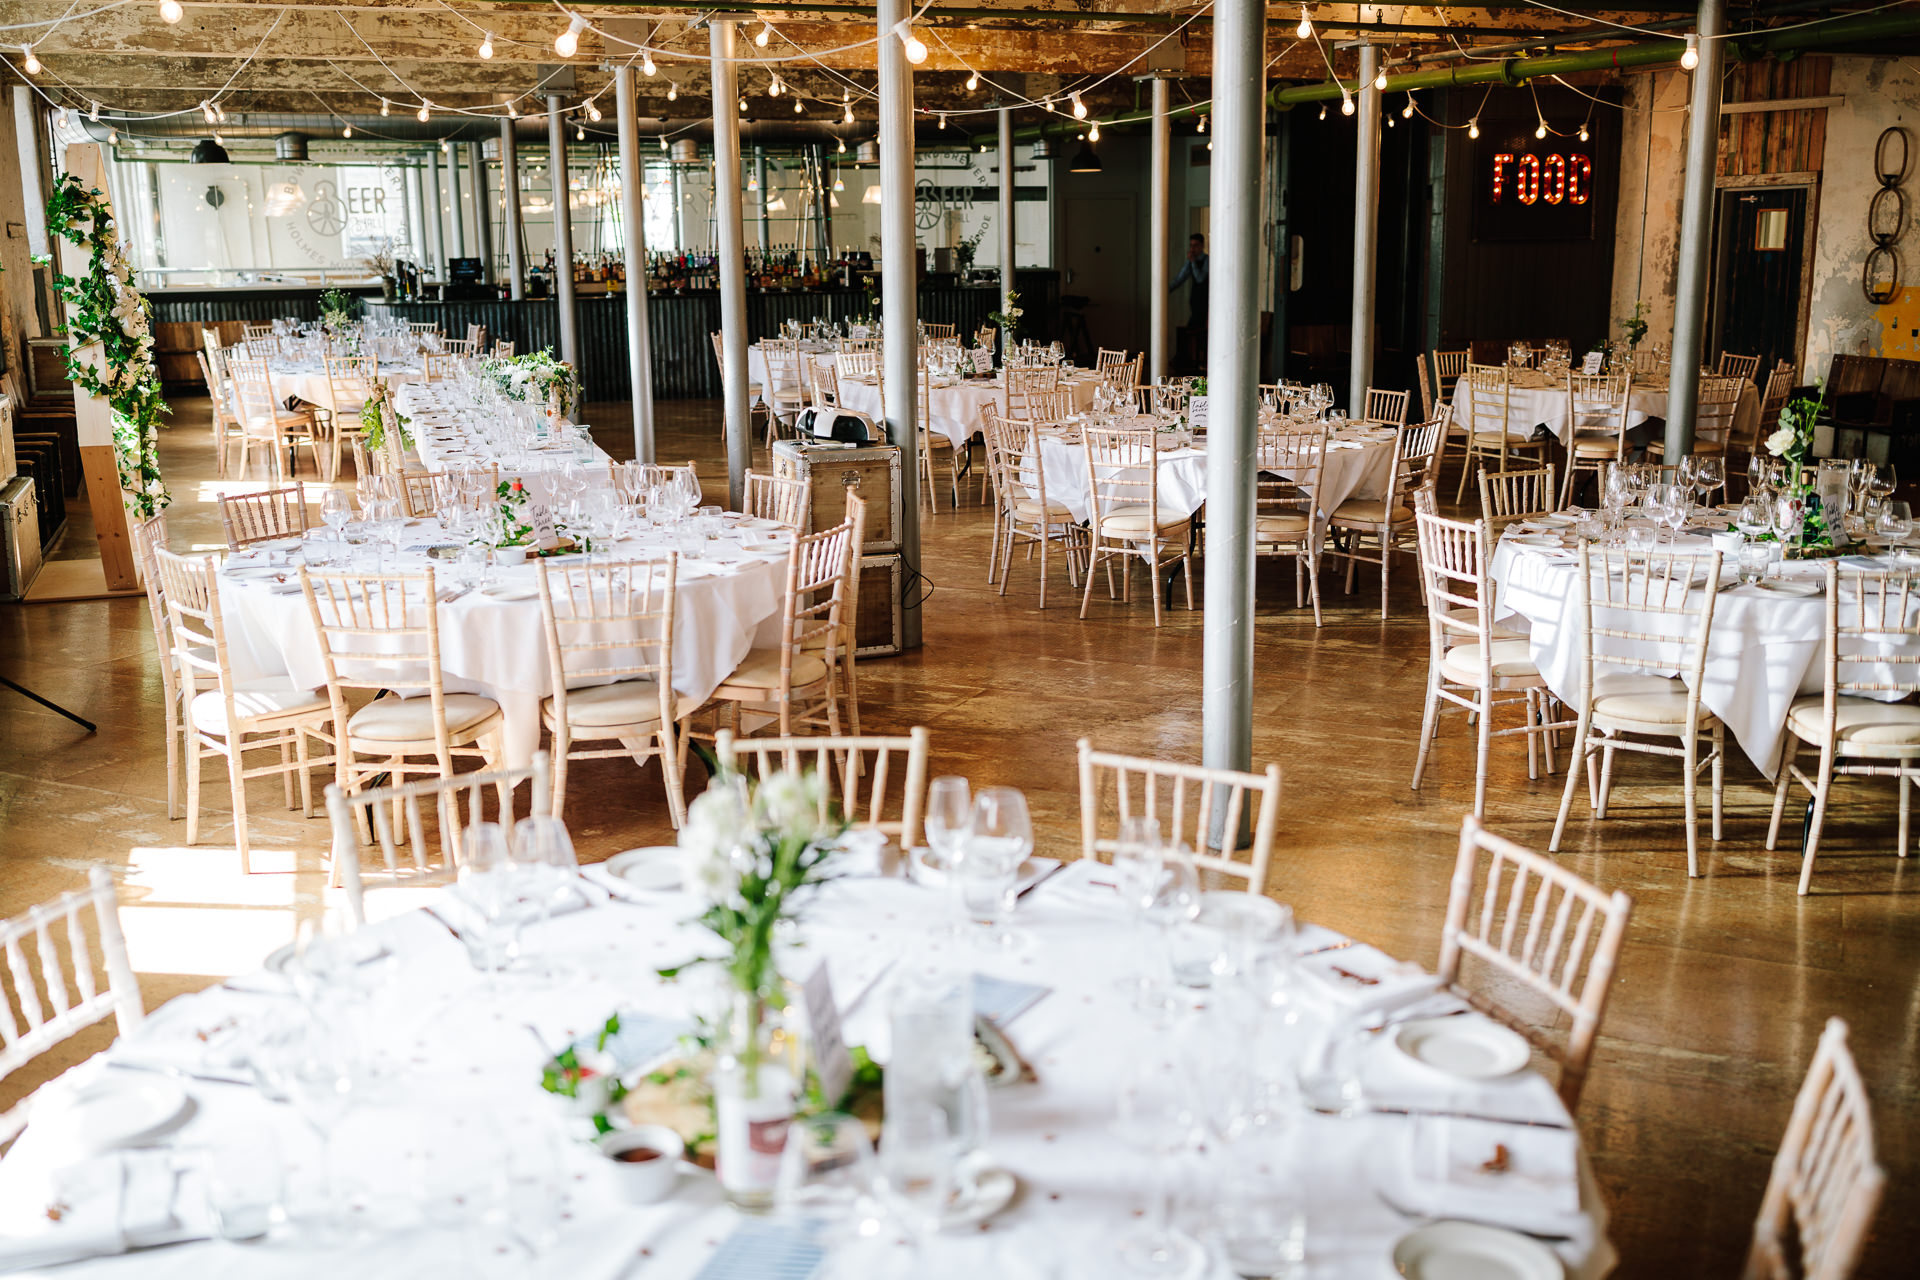 Holmes mill wedding lancashire bride and groom award winning rooms